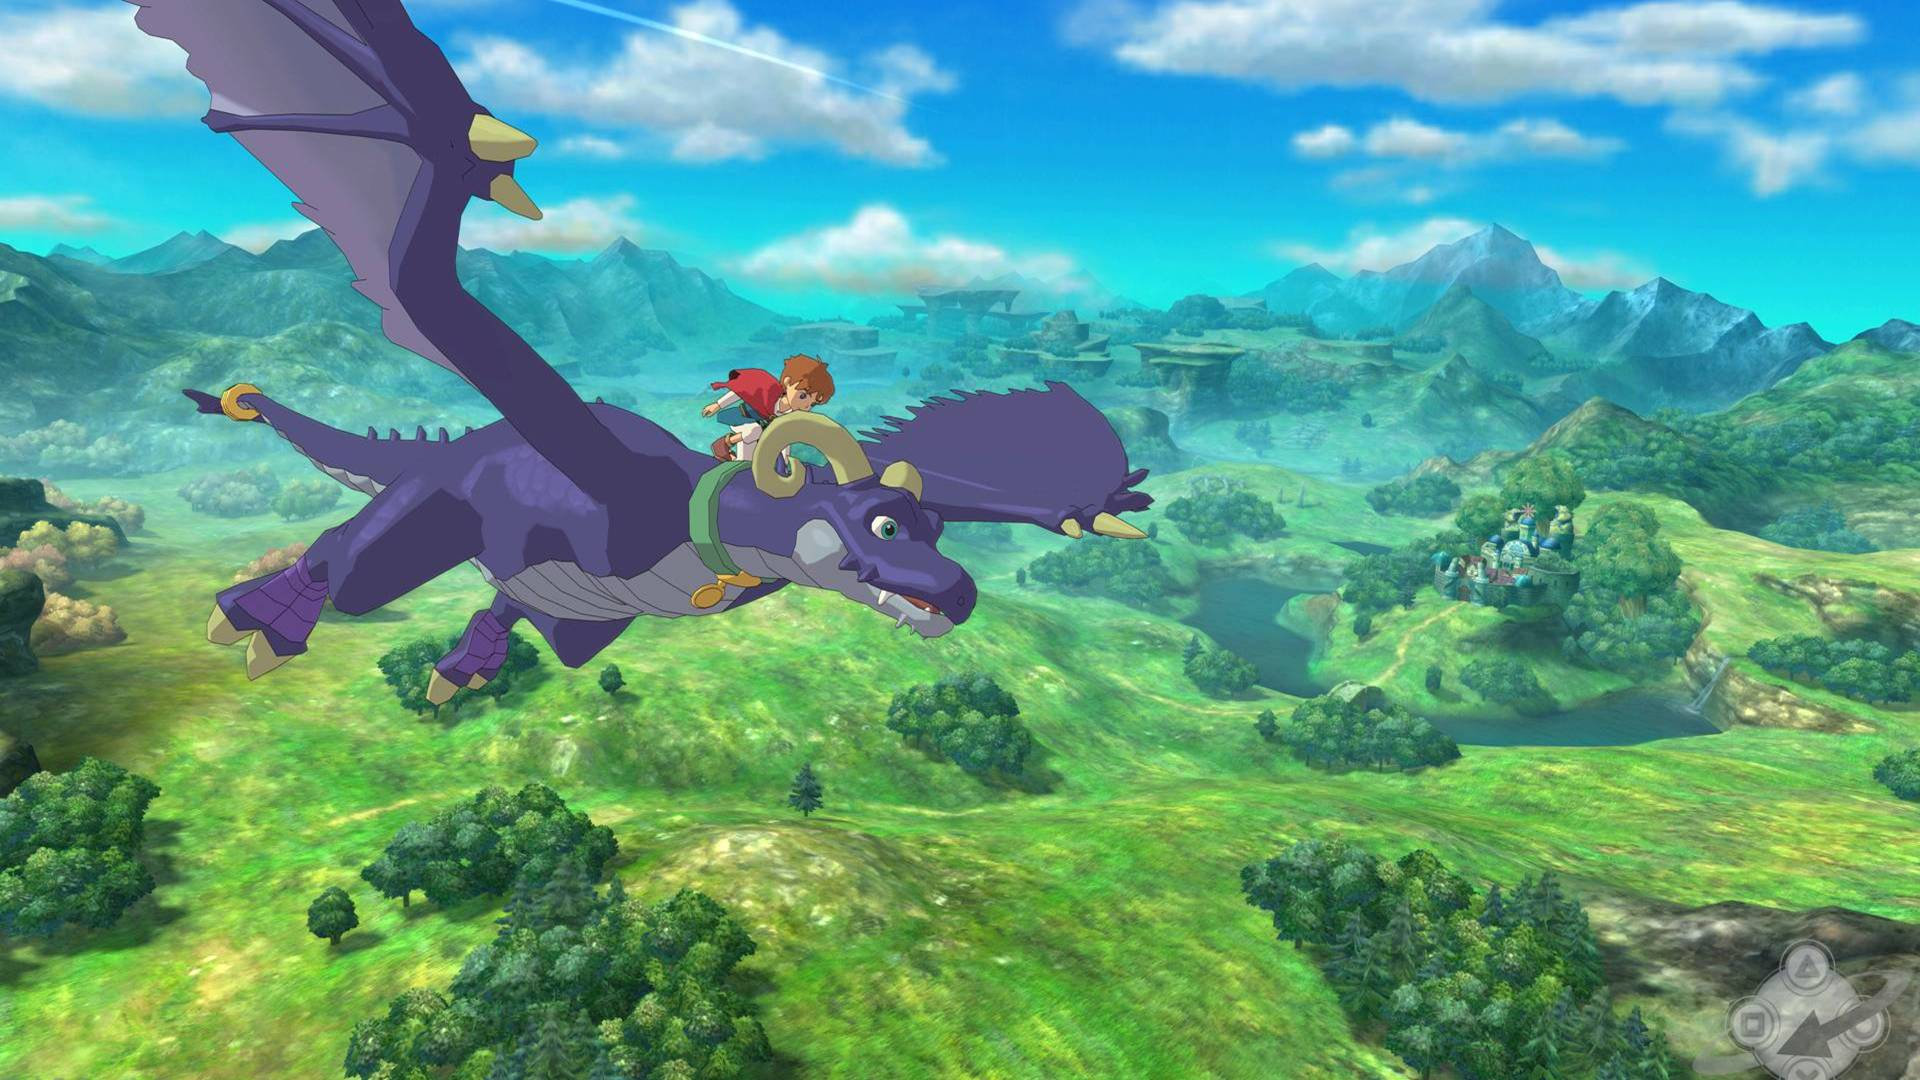 ni-no-kuni-wrath-of-the-white-witch_hd_wallpaper